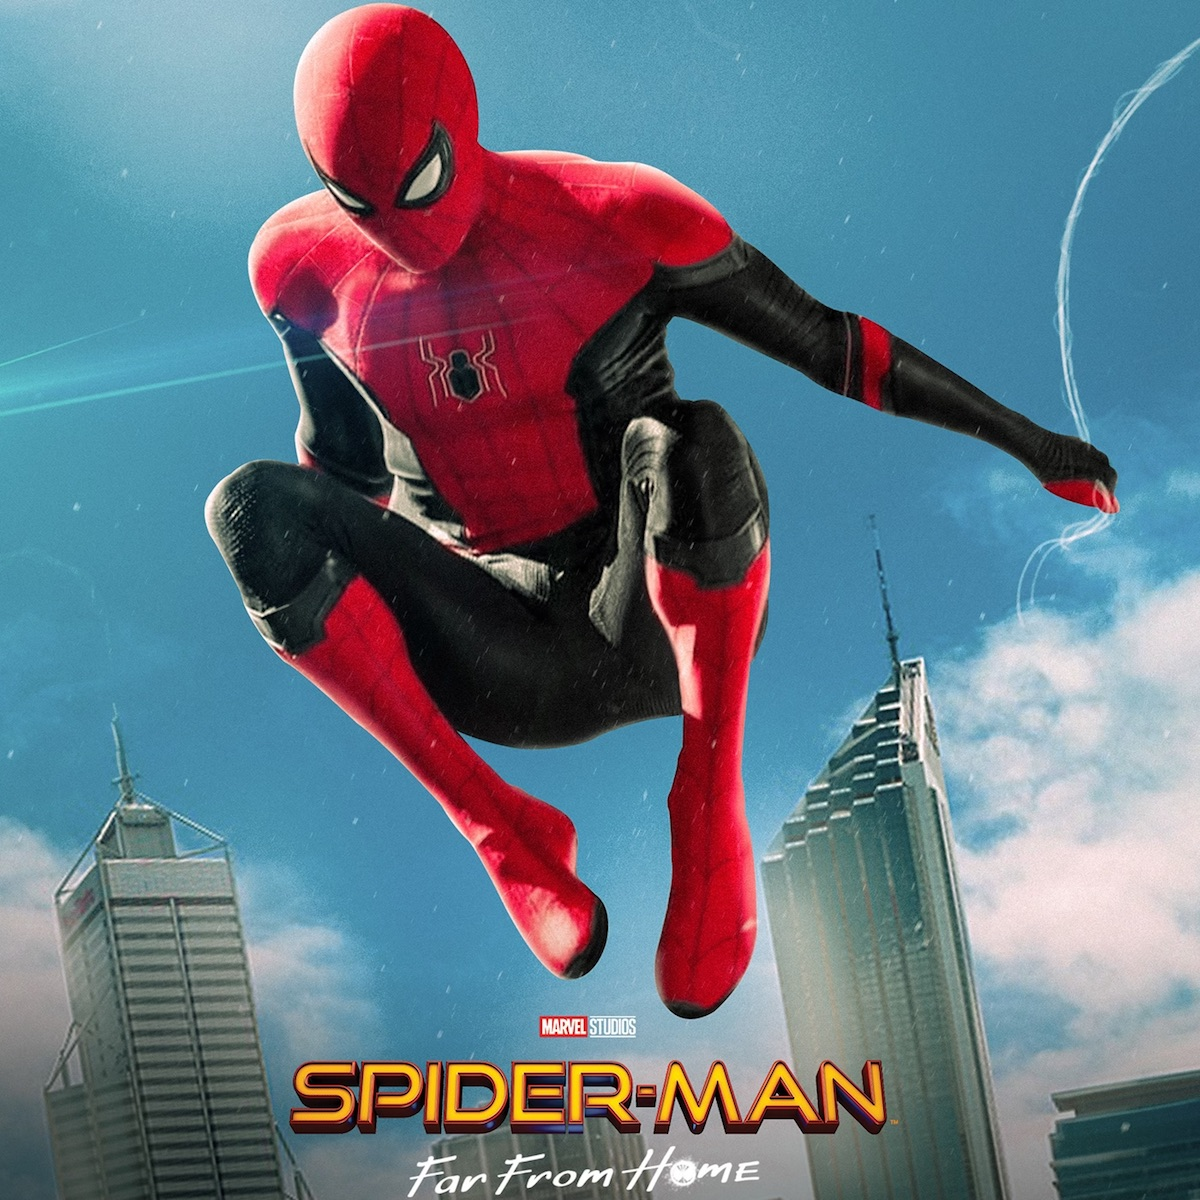 My Way Matinee - Spider-Man: Far From Home